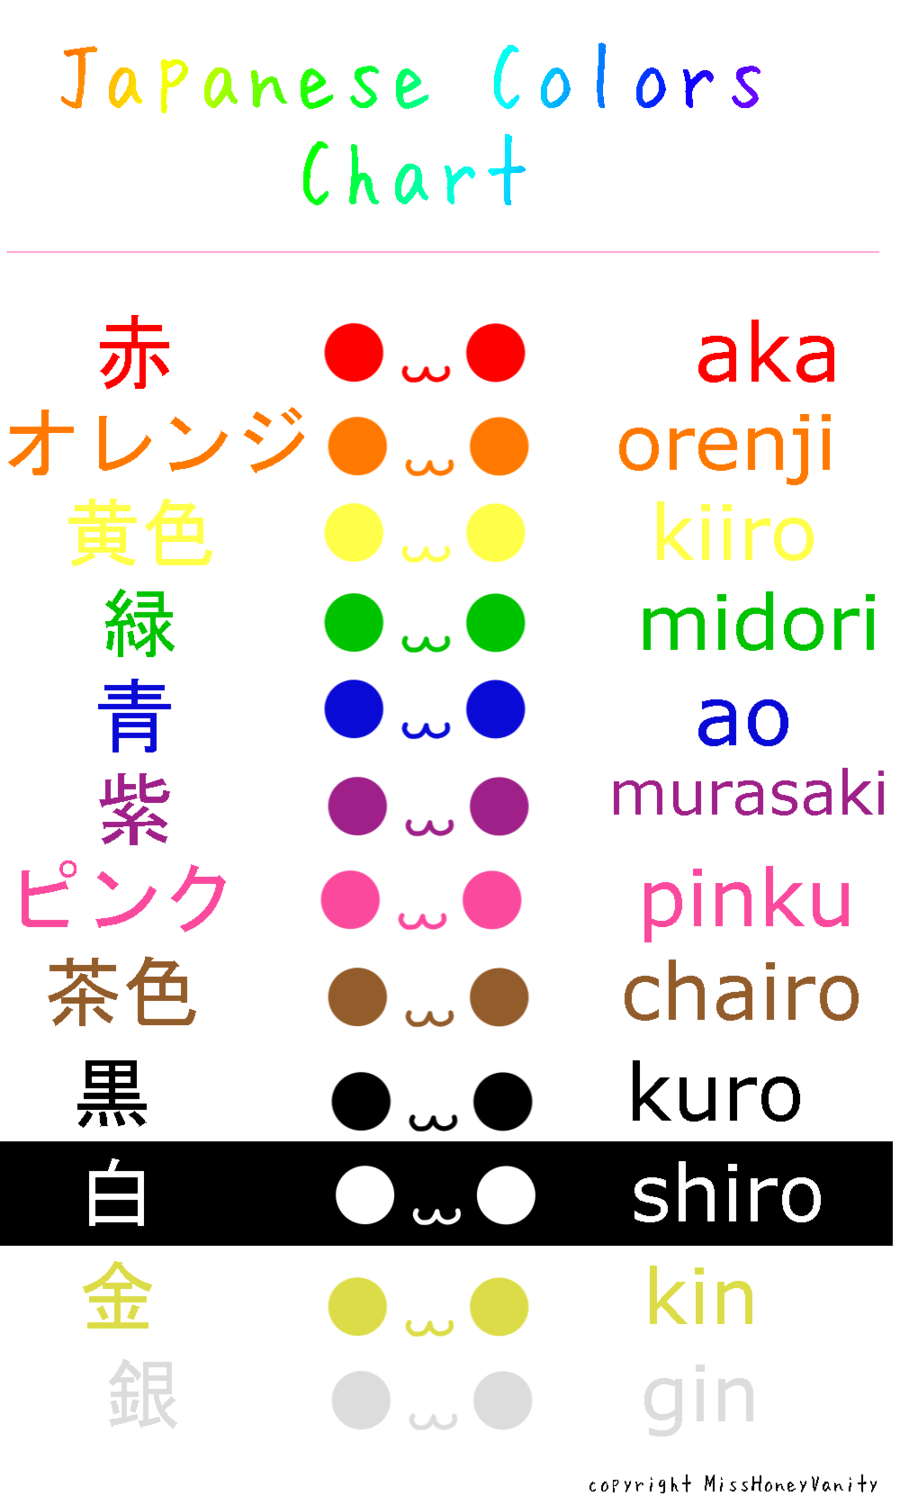 Colors in Japanese. I knew most of these from Kuroko no